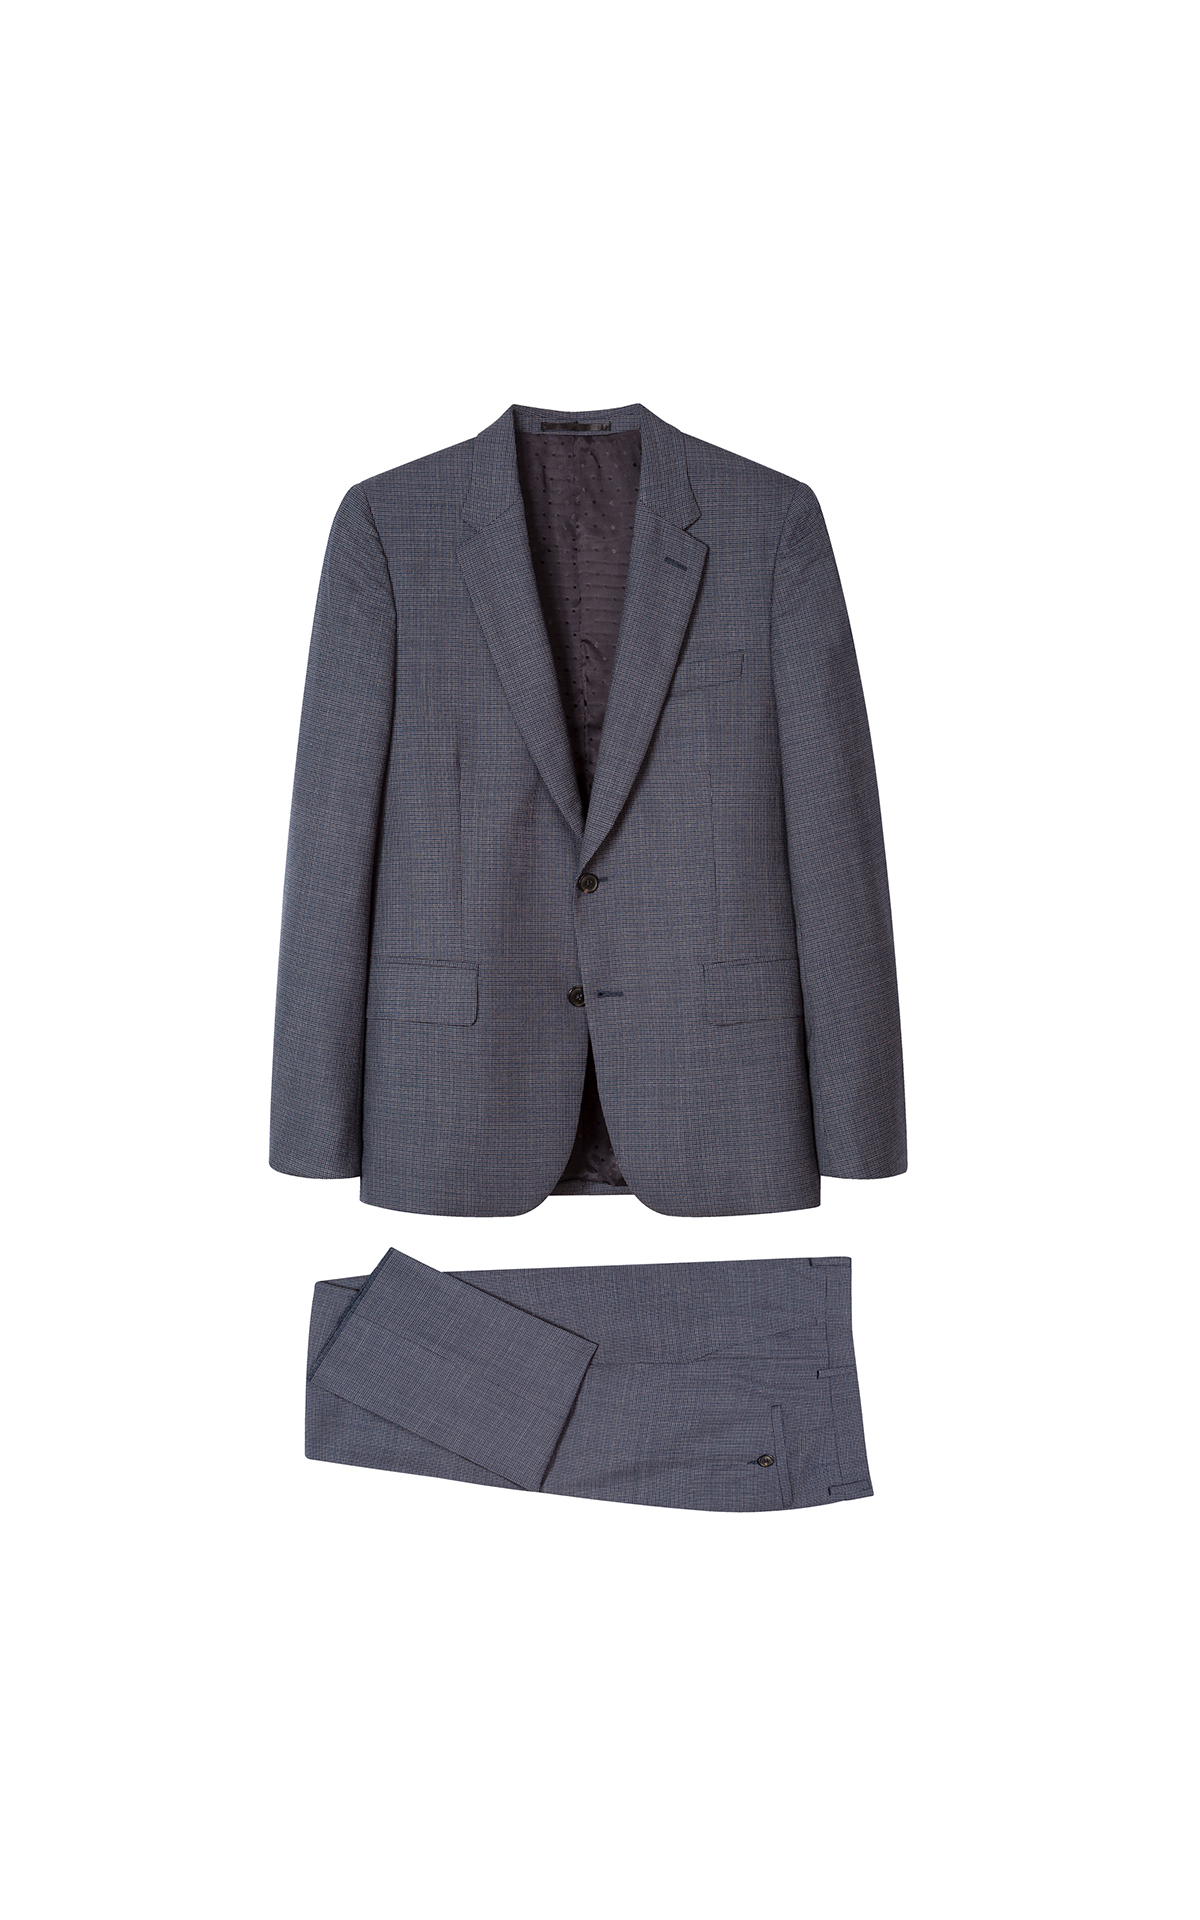 Paul Smith Men's grey suit at The Bicester Village Shopping Collection